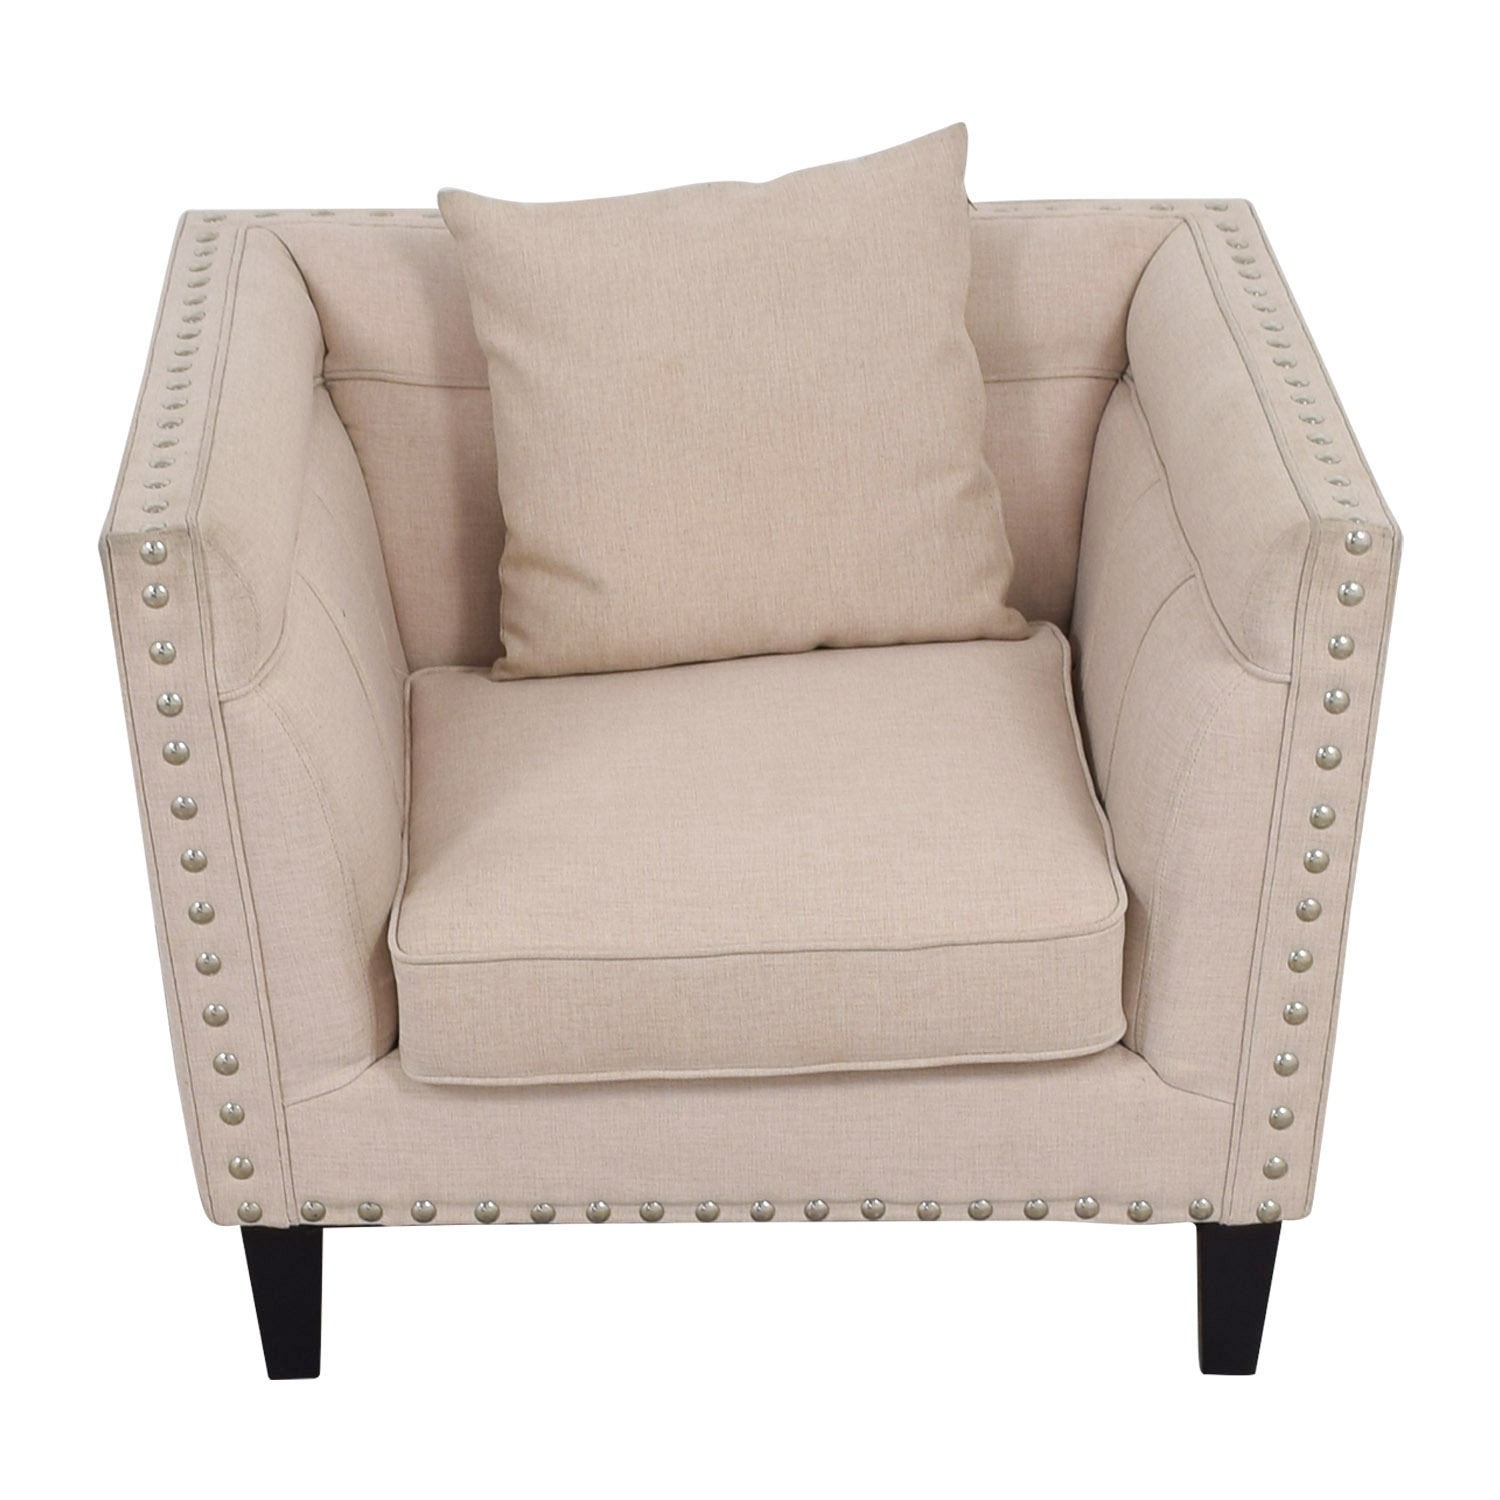 buy House of Hampton Beige Nailhead Square Upholstered Armchair House of Hampton